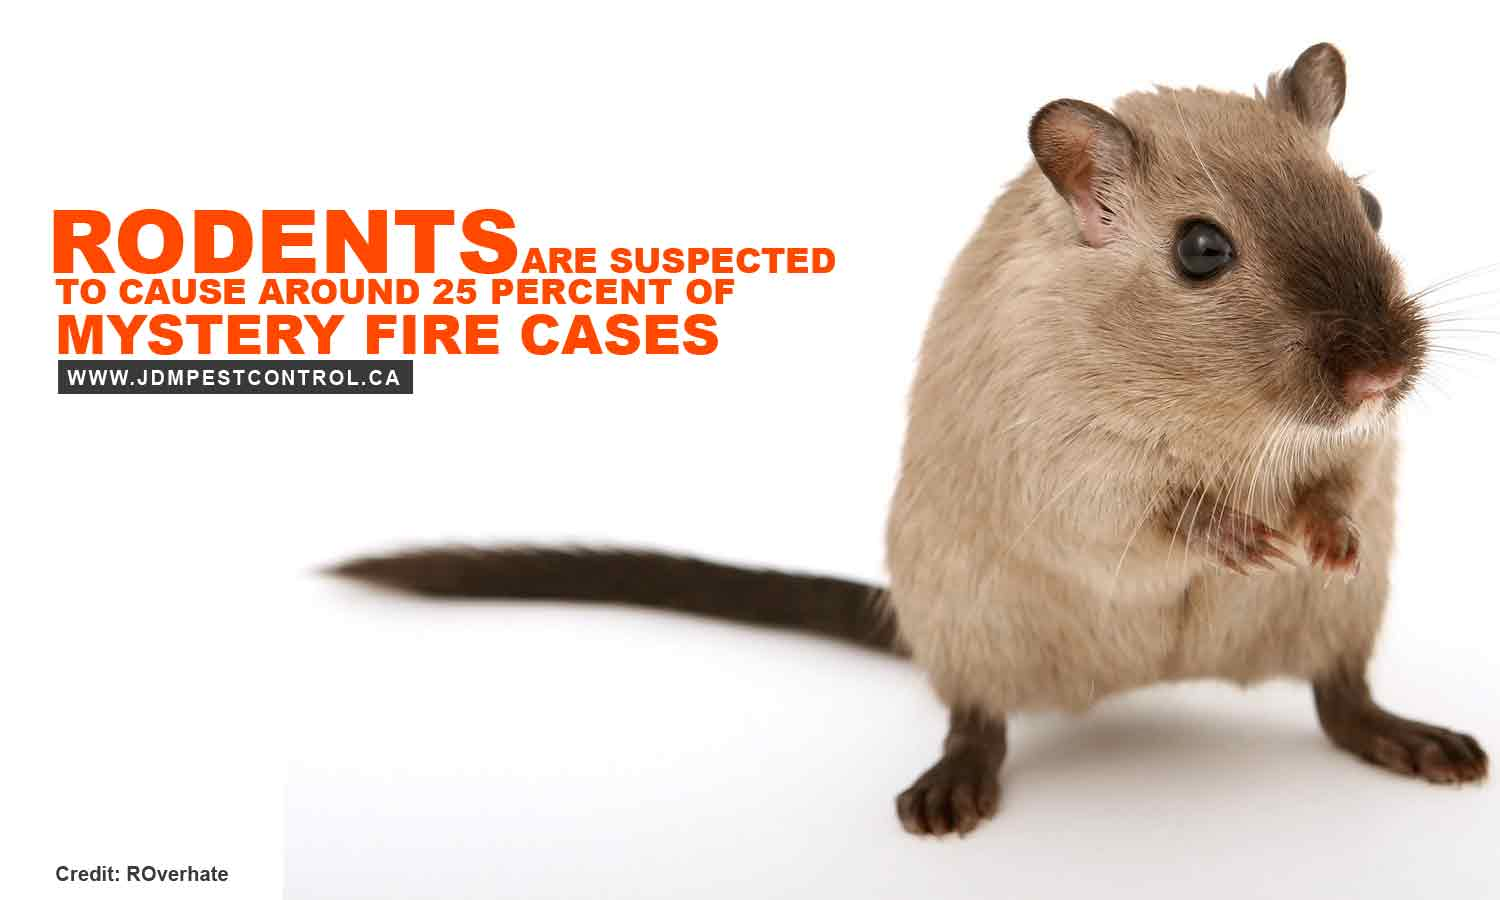 Rodents are suspected to cause around 25 percent of mystery fire cases